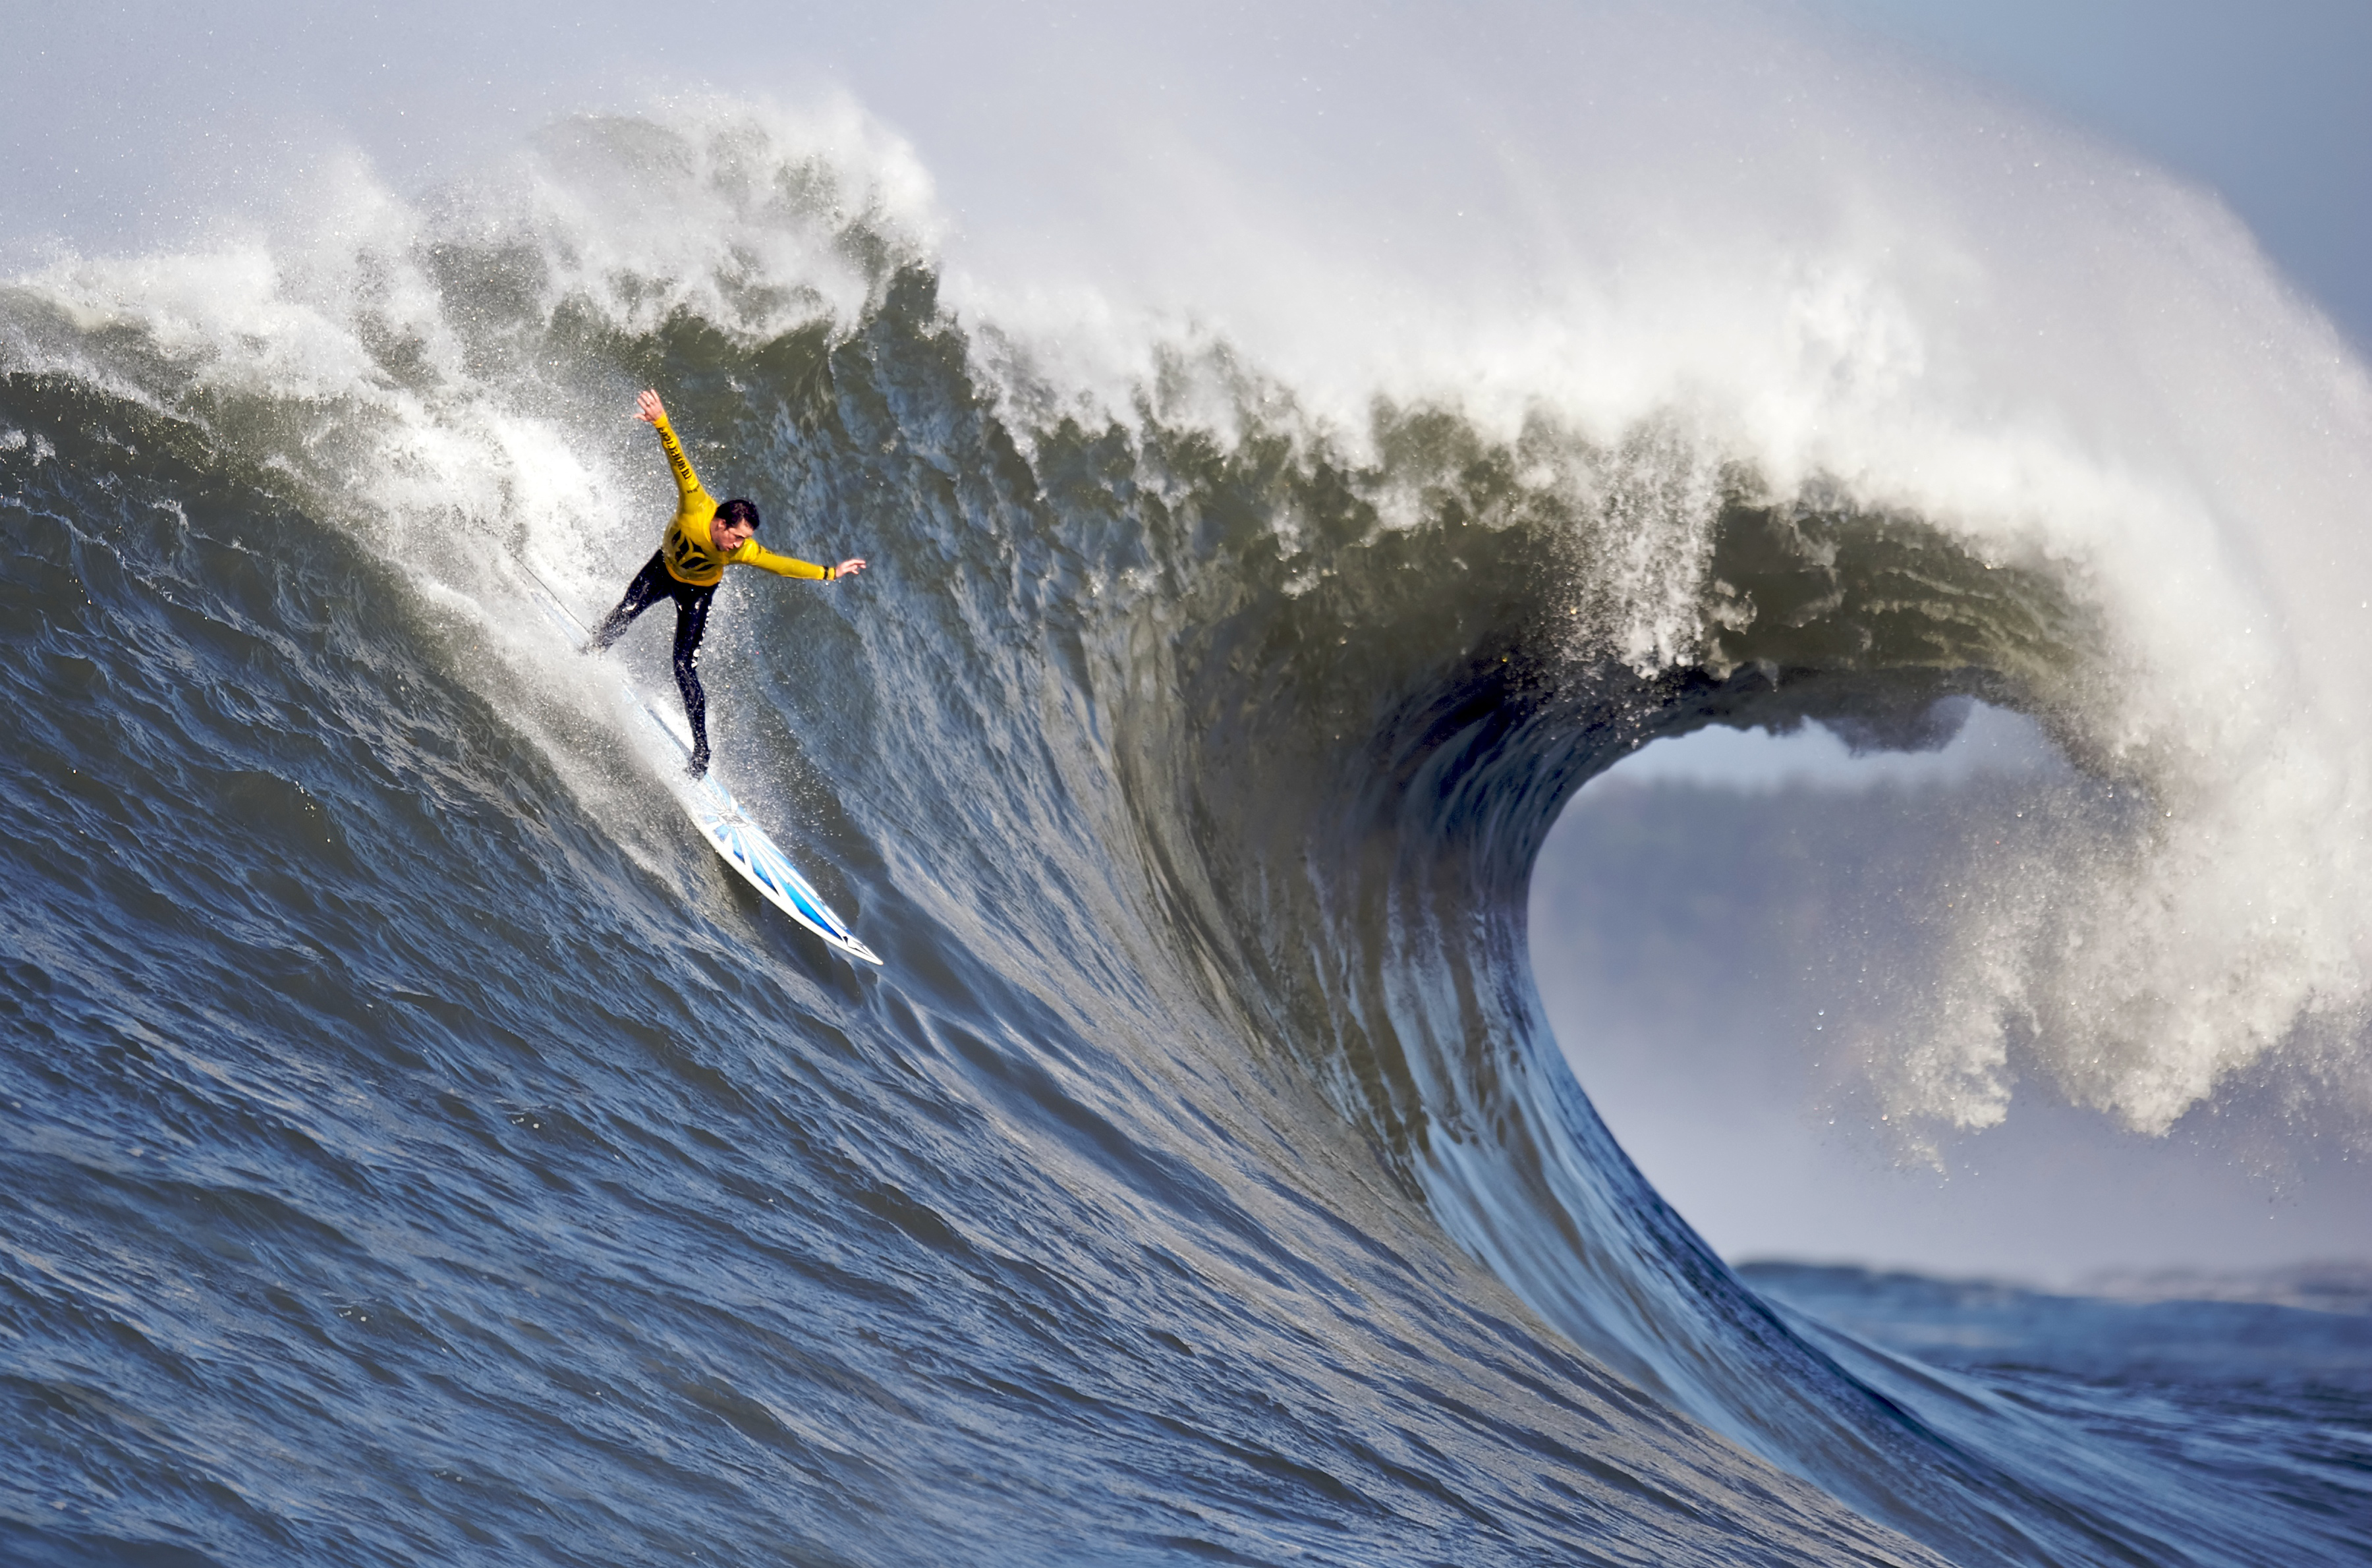 http://upload.wikimedia.org/wikipedia/commons/d/d1/2010_mavericks_competition_edit1.jpg